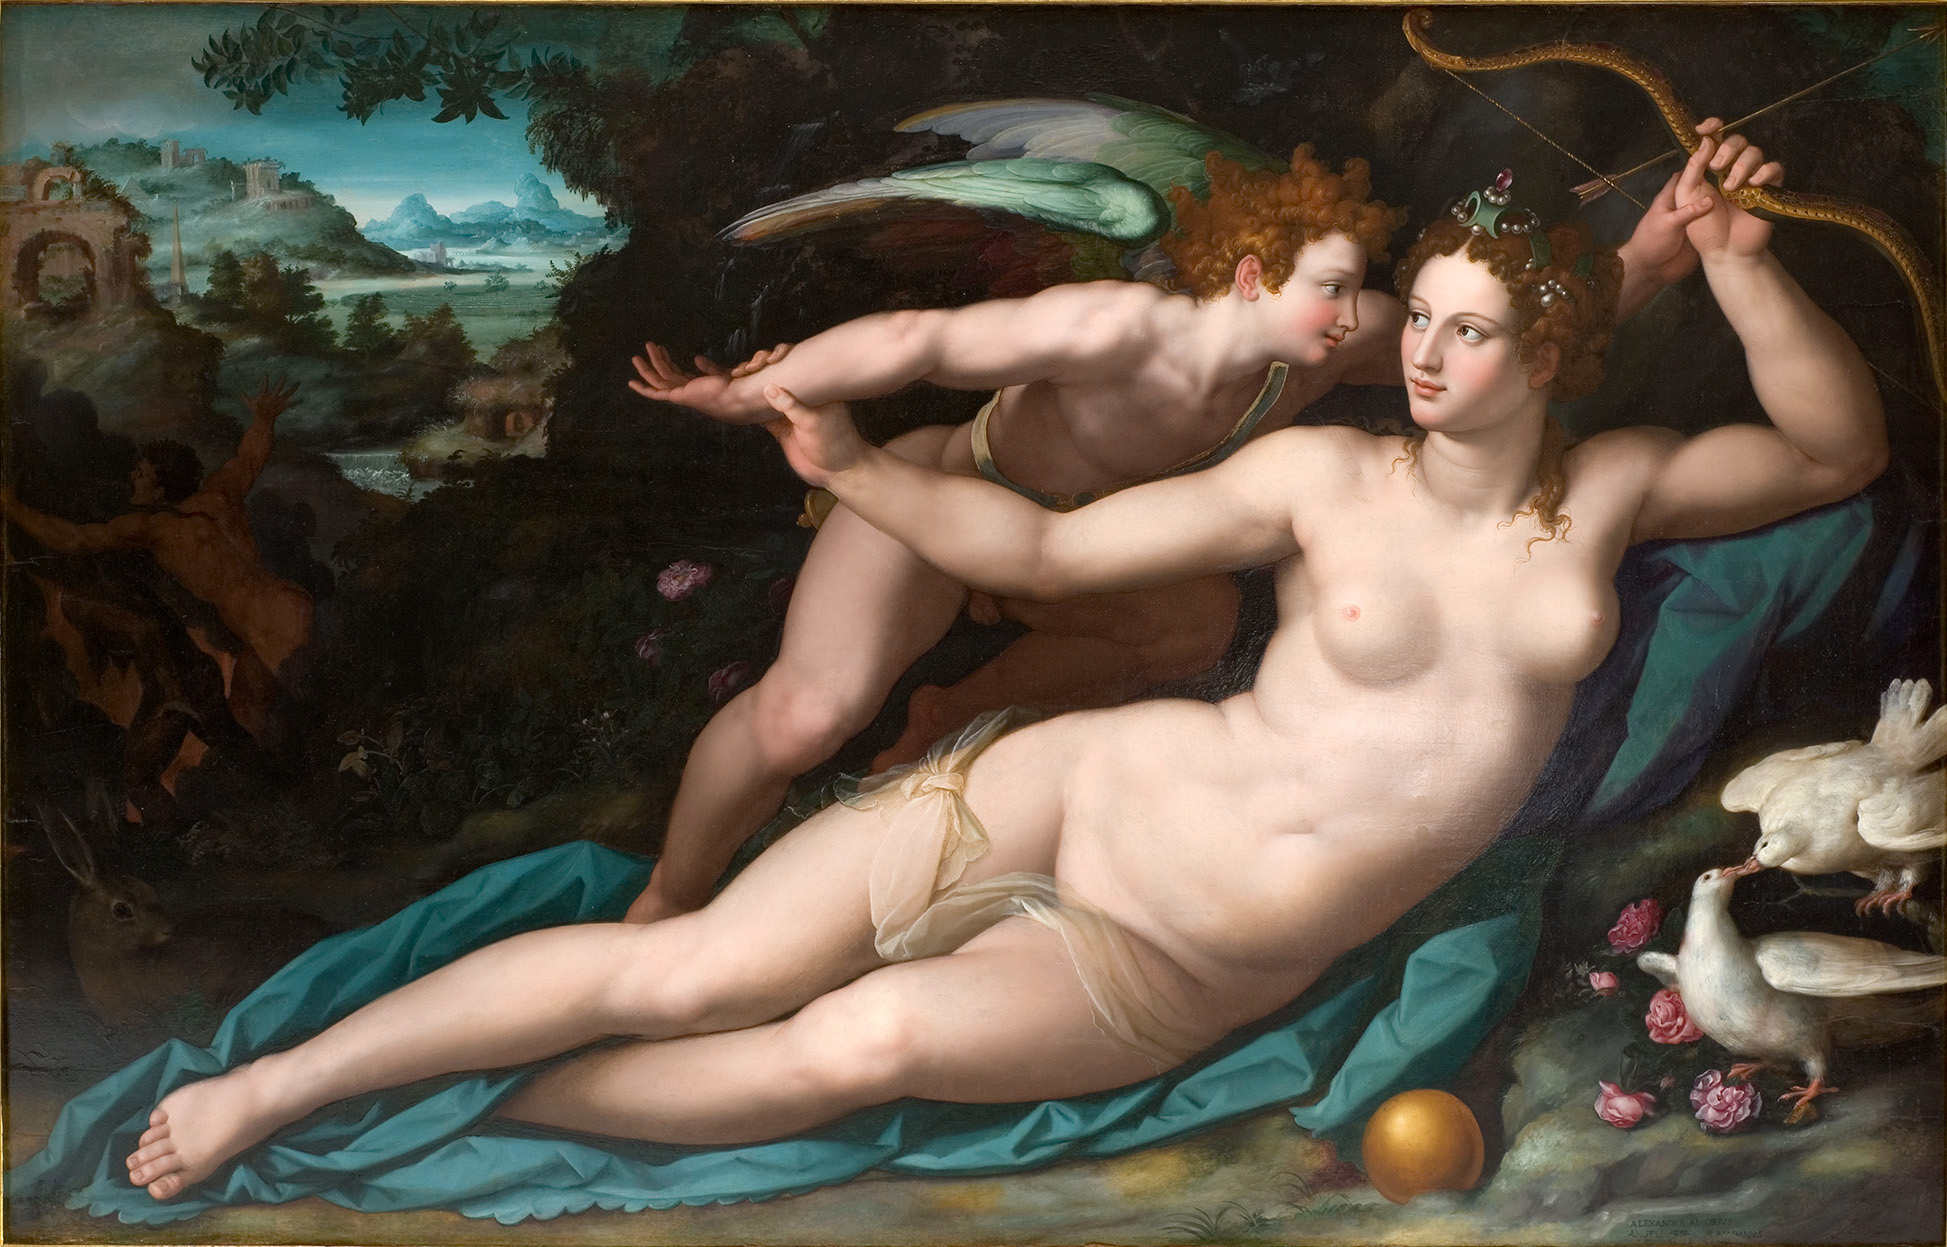 https://i1.wp.com/upload.wikimedia.org/wikipedia/commons/8/88/Allori_Venus_Cupido.jpg